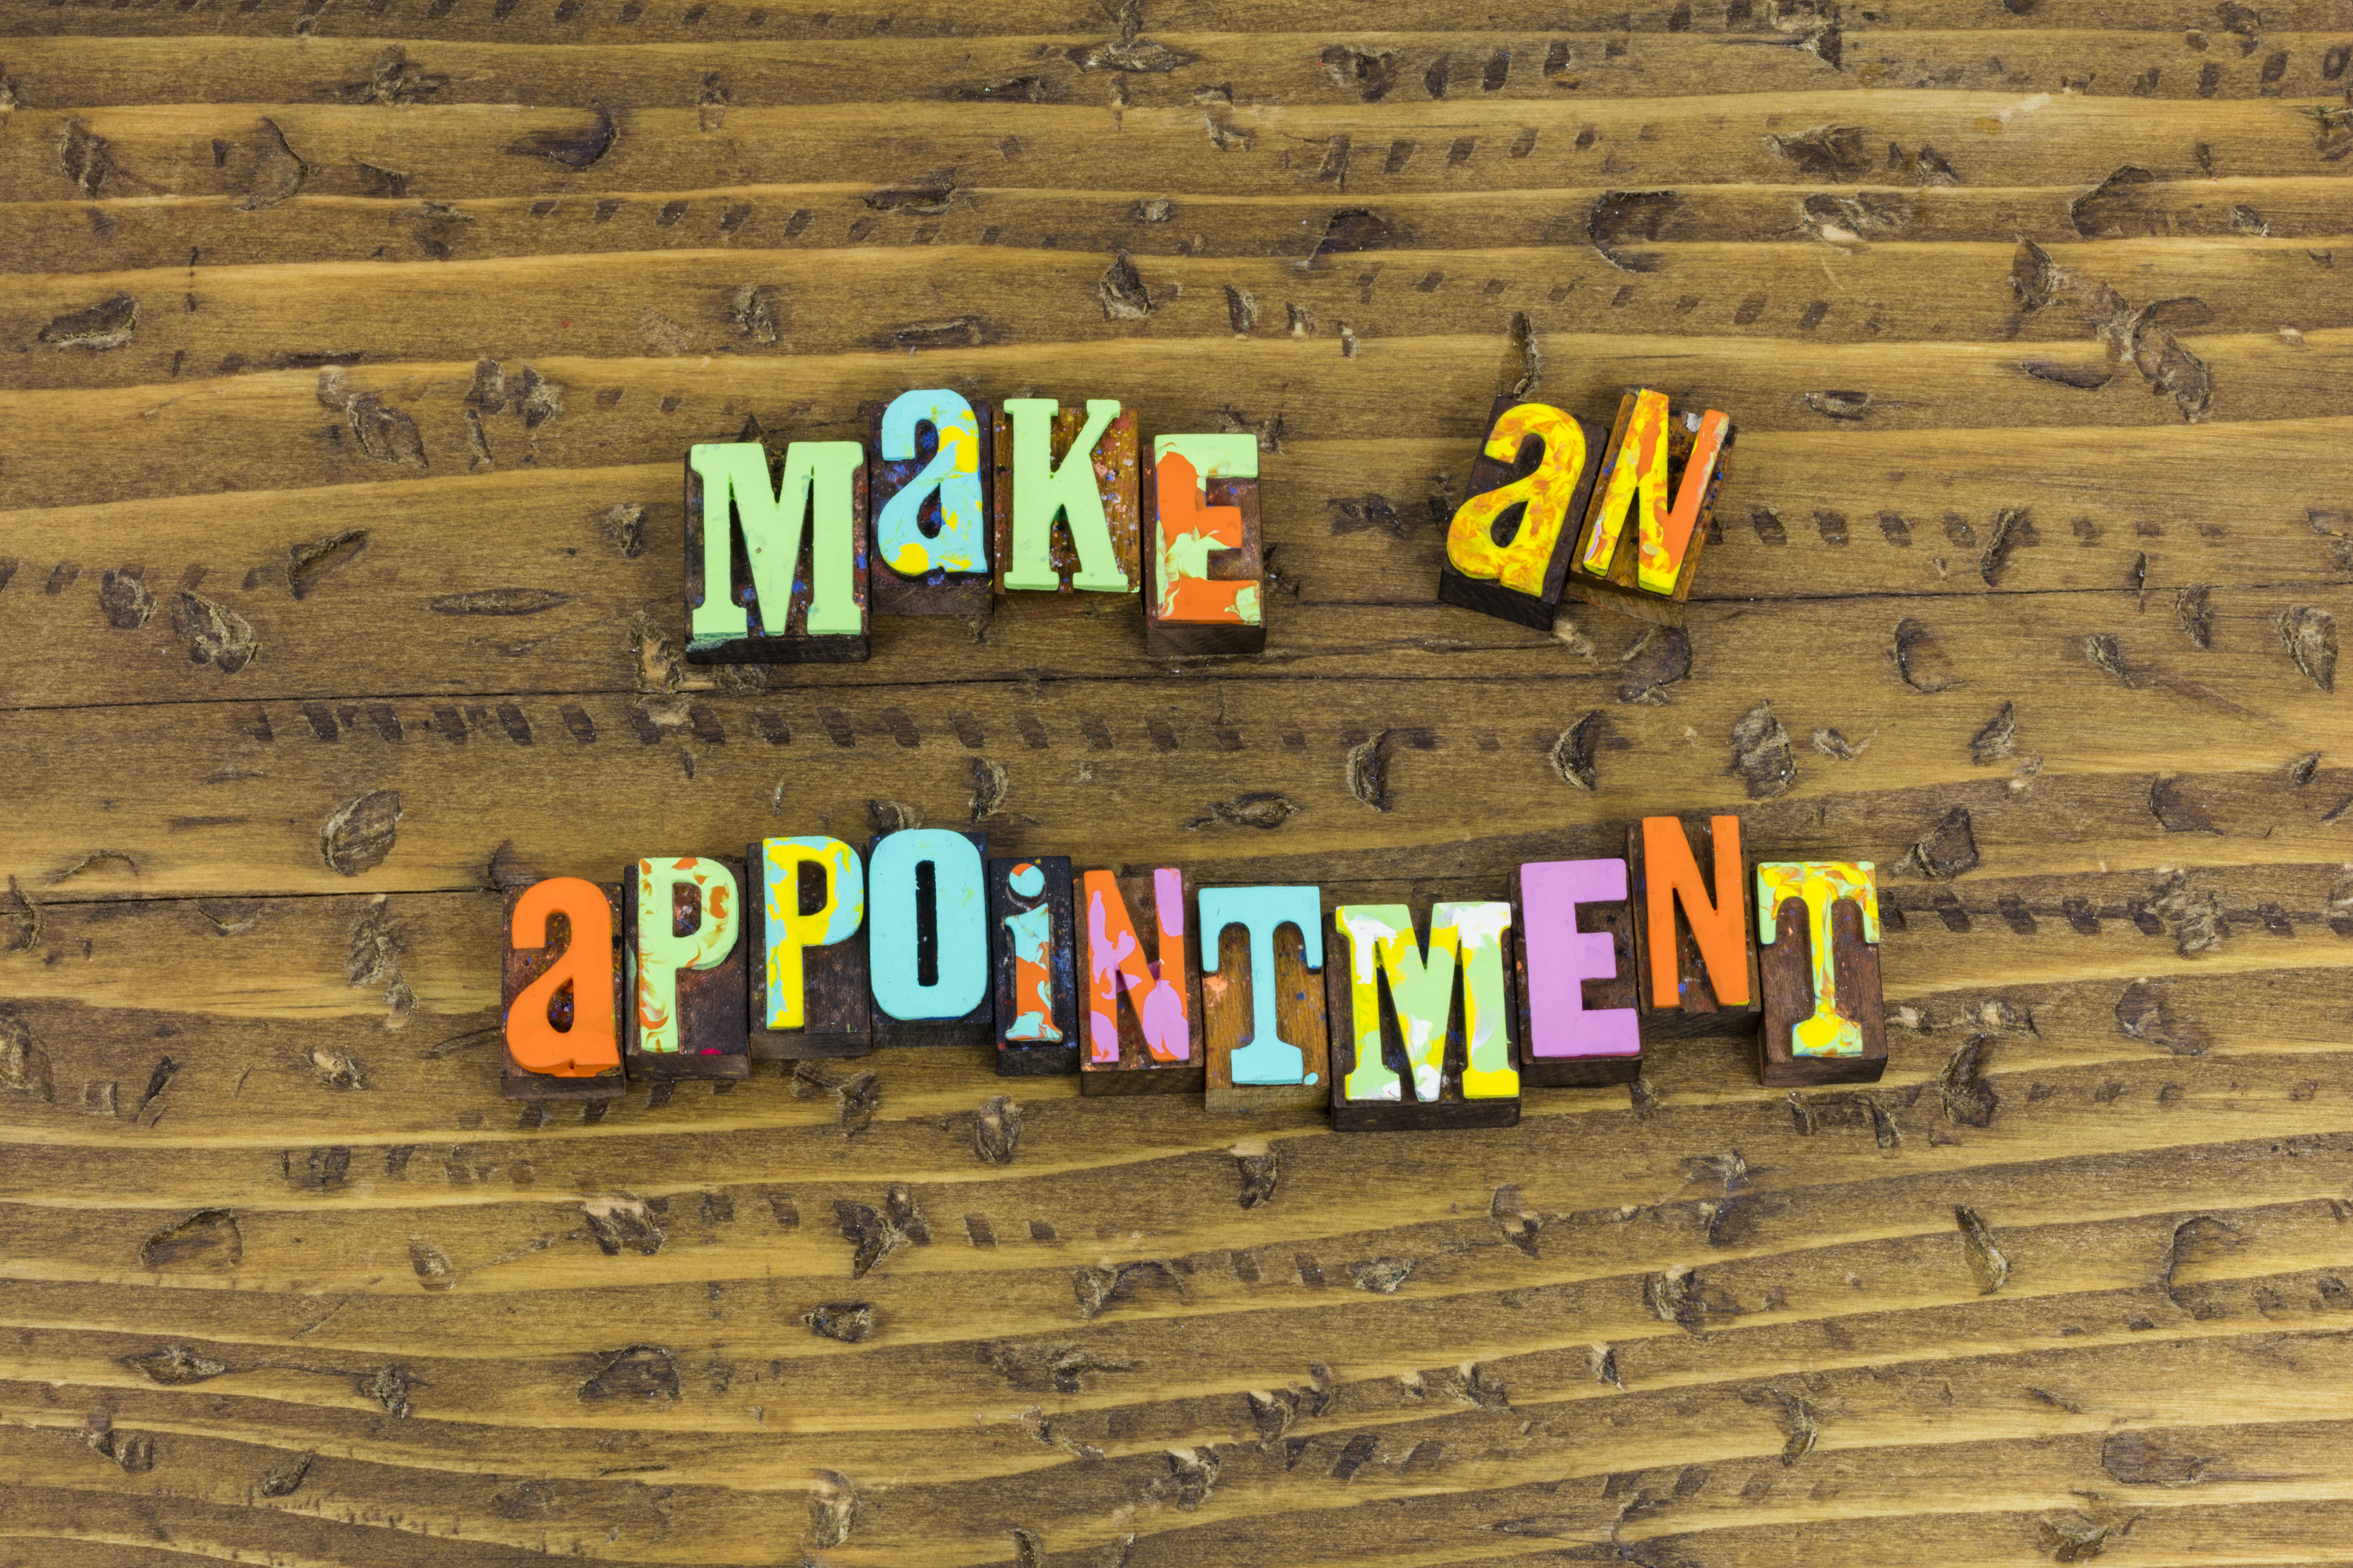 images that says Make an Appointment